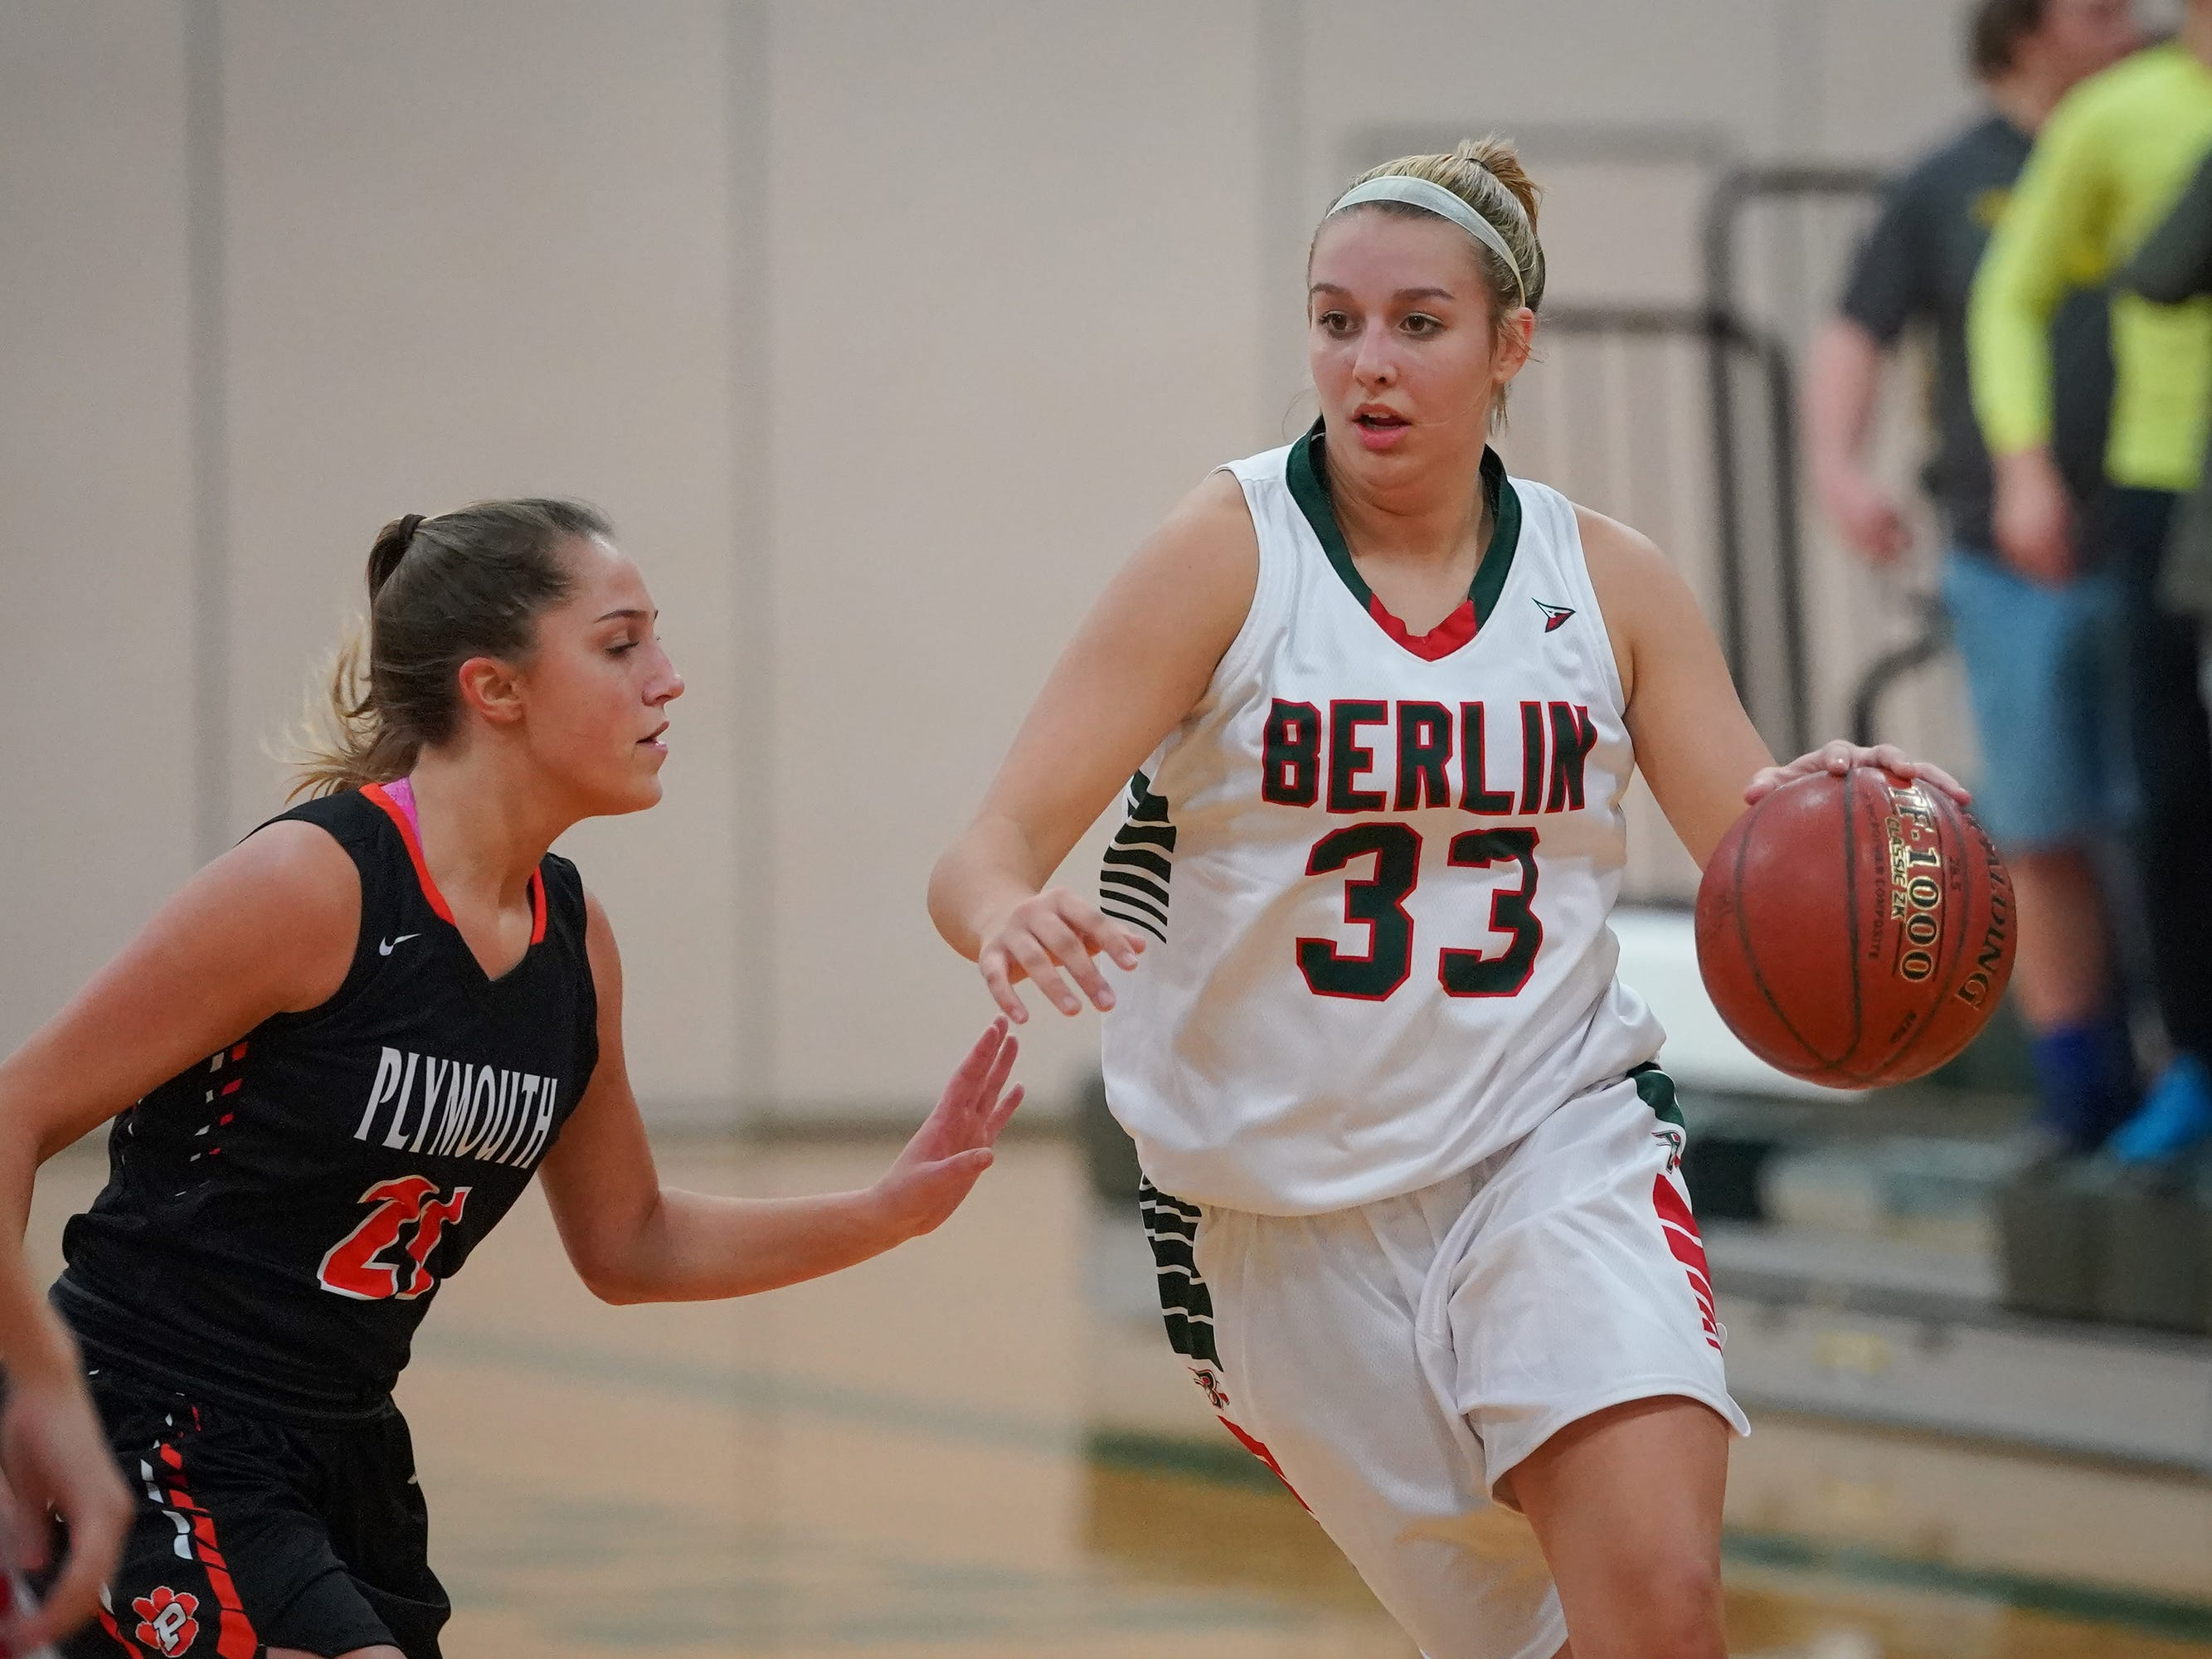 Madalyn Naparalla (33) of Berlin drives to the basket. The Berlin Indians hosted the Plymouth Panthers in an East Central Conference basketball game Thursday evening, December 13, 2018.